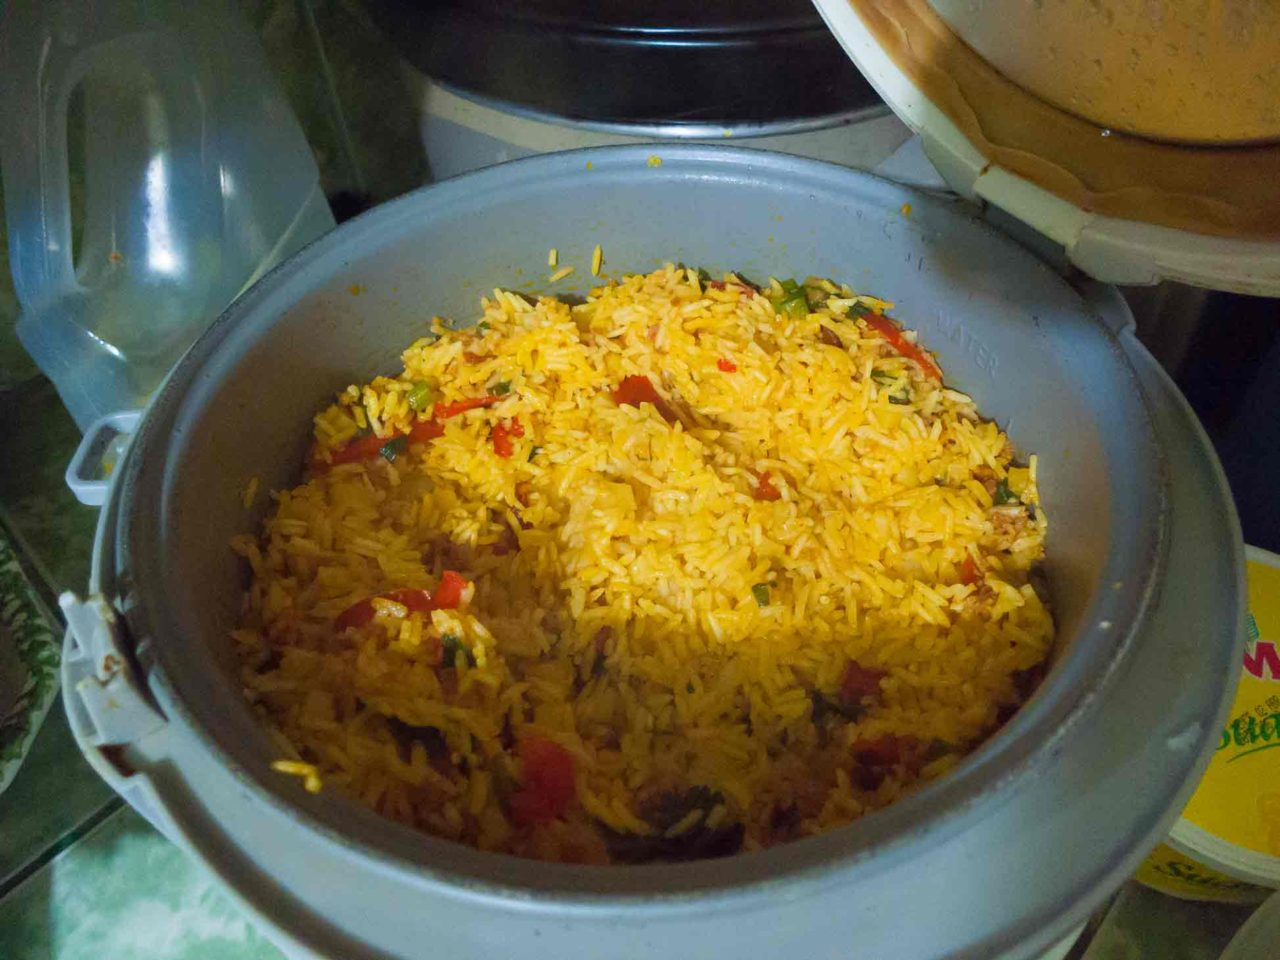 Costa rica tamales recipe with detailed photos and instructions costa rican tamales saffron rice mixture recipe with photos forumfinder Gallery